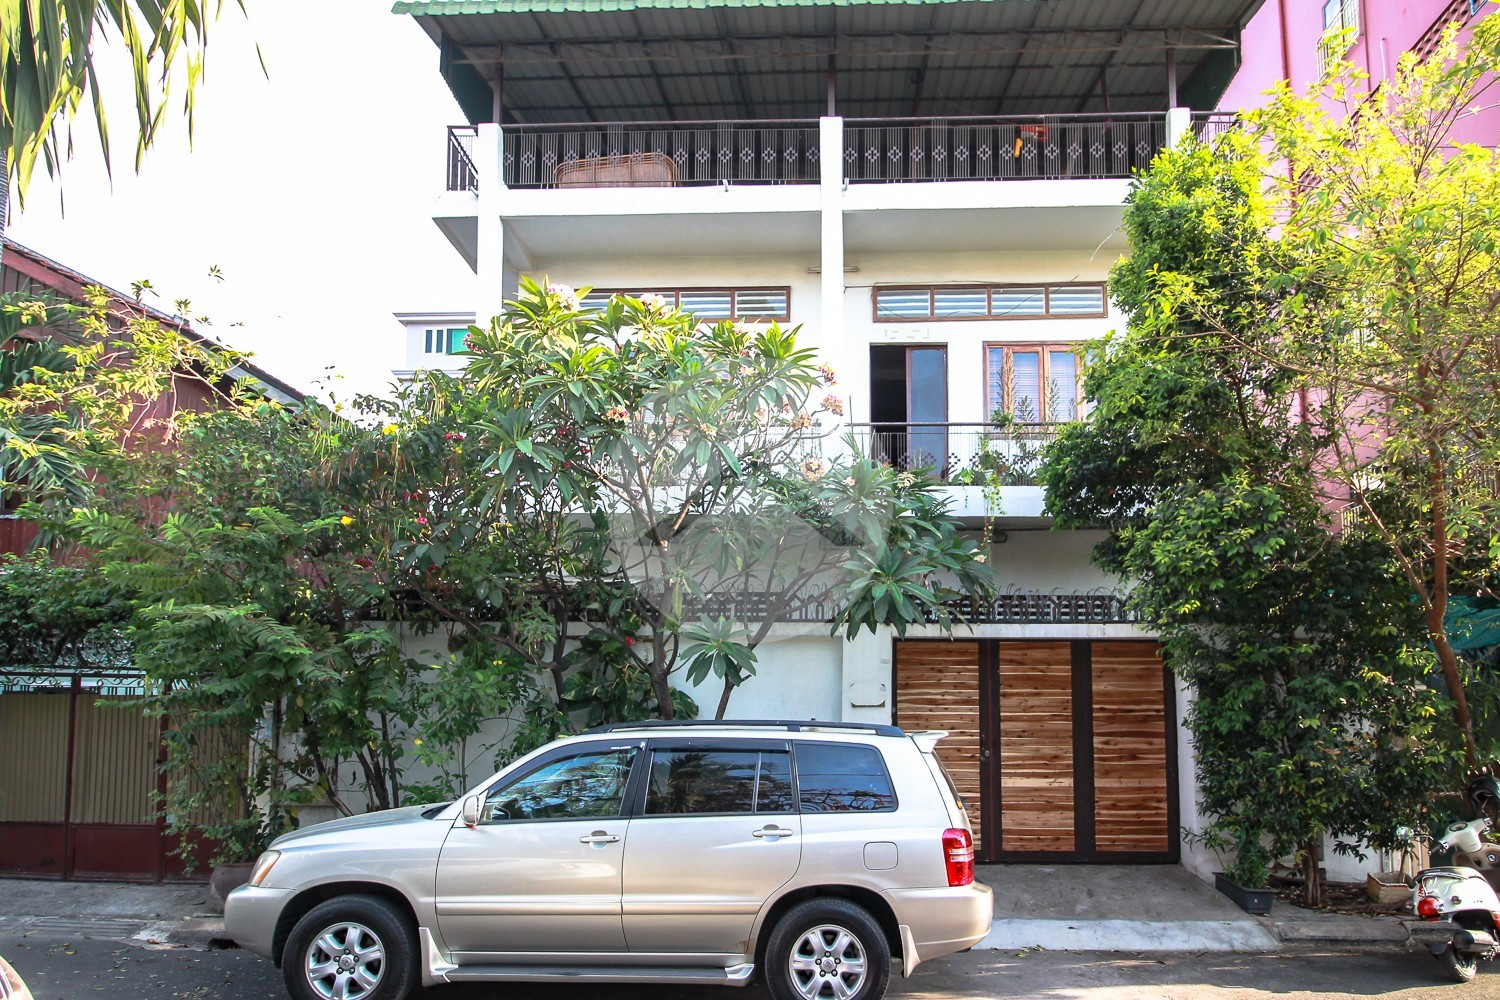 2 Bedroom Townhouse For Rent in Beong Tra Bek, Phnom Penh